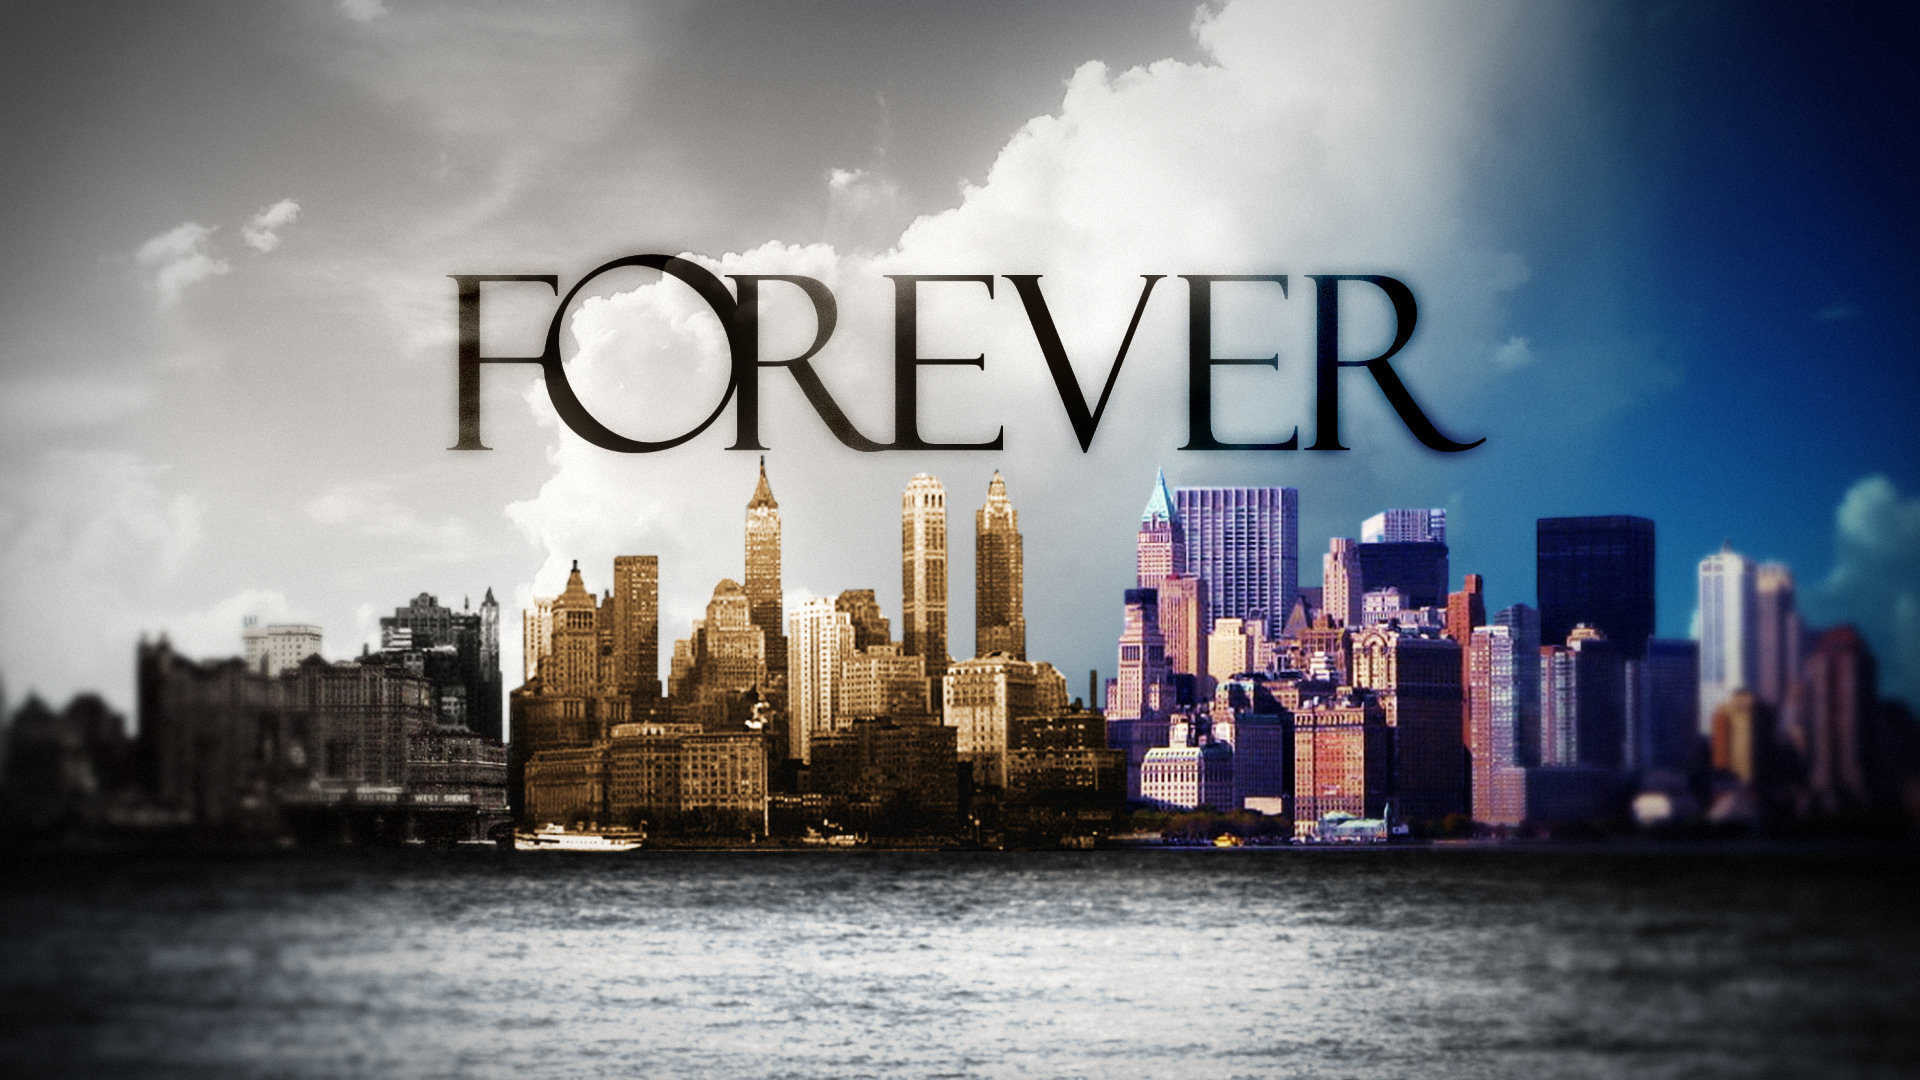 1920x1080 Wallpaper: Forever Tv Series Wallpapers HD. Upload at November 1, 2014 .